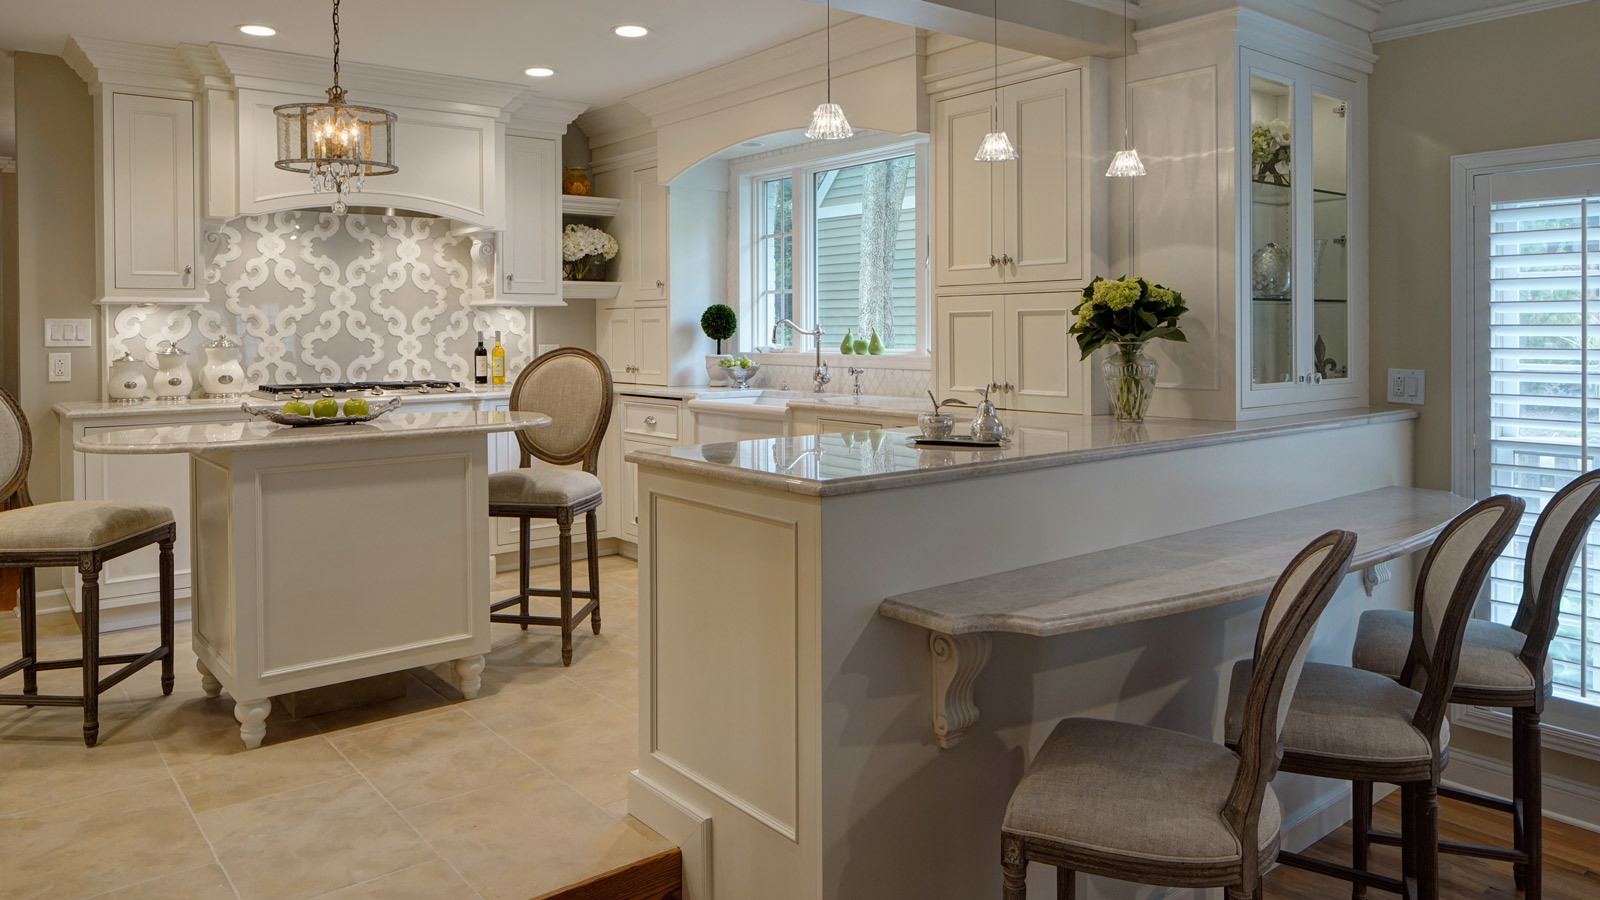 1600 x 900 Luxury Meets Character in Timeless Kitchen Design drury design